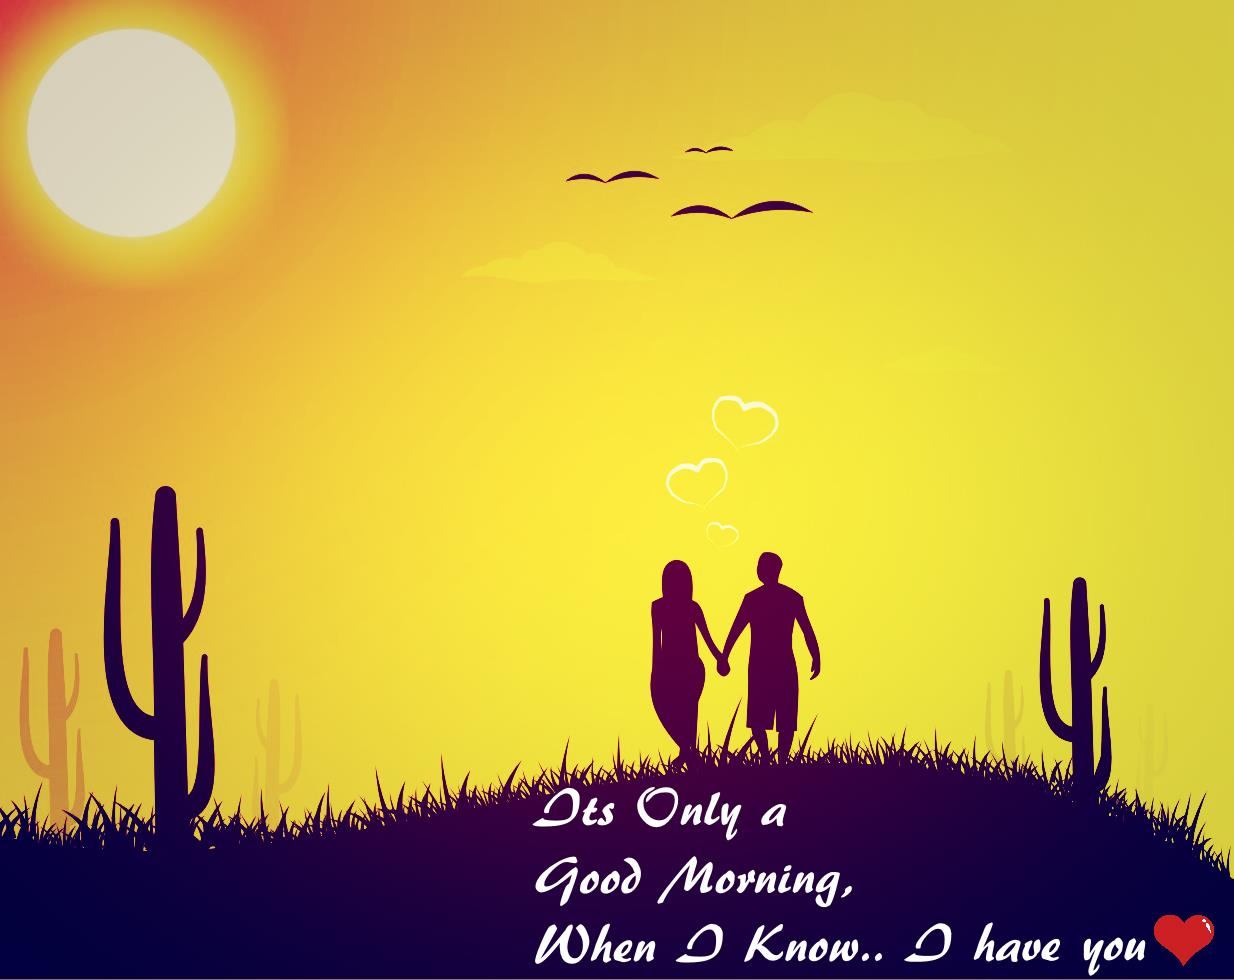 Good Morning Love Wallpaper In Hd : Good Morning Wallpapers Free Download